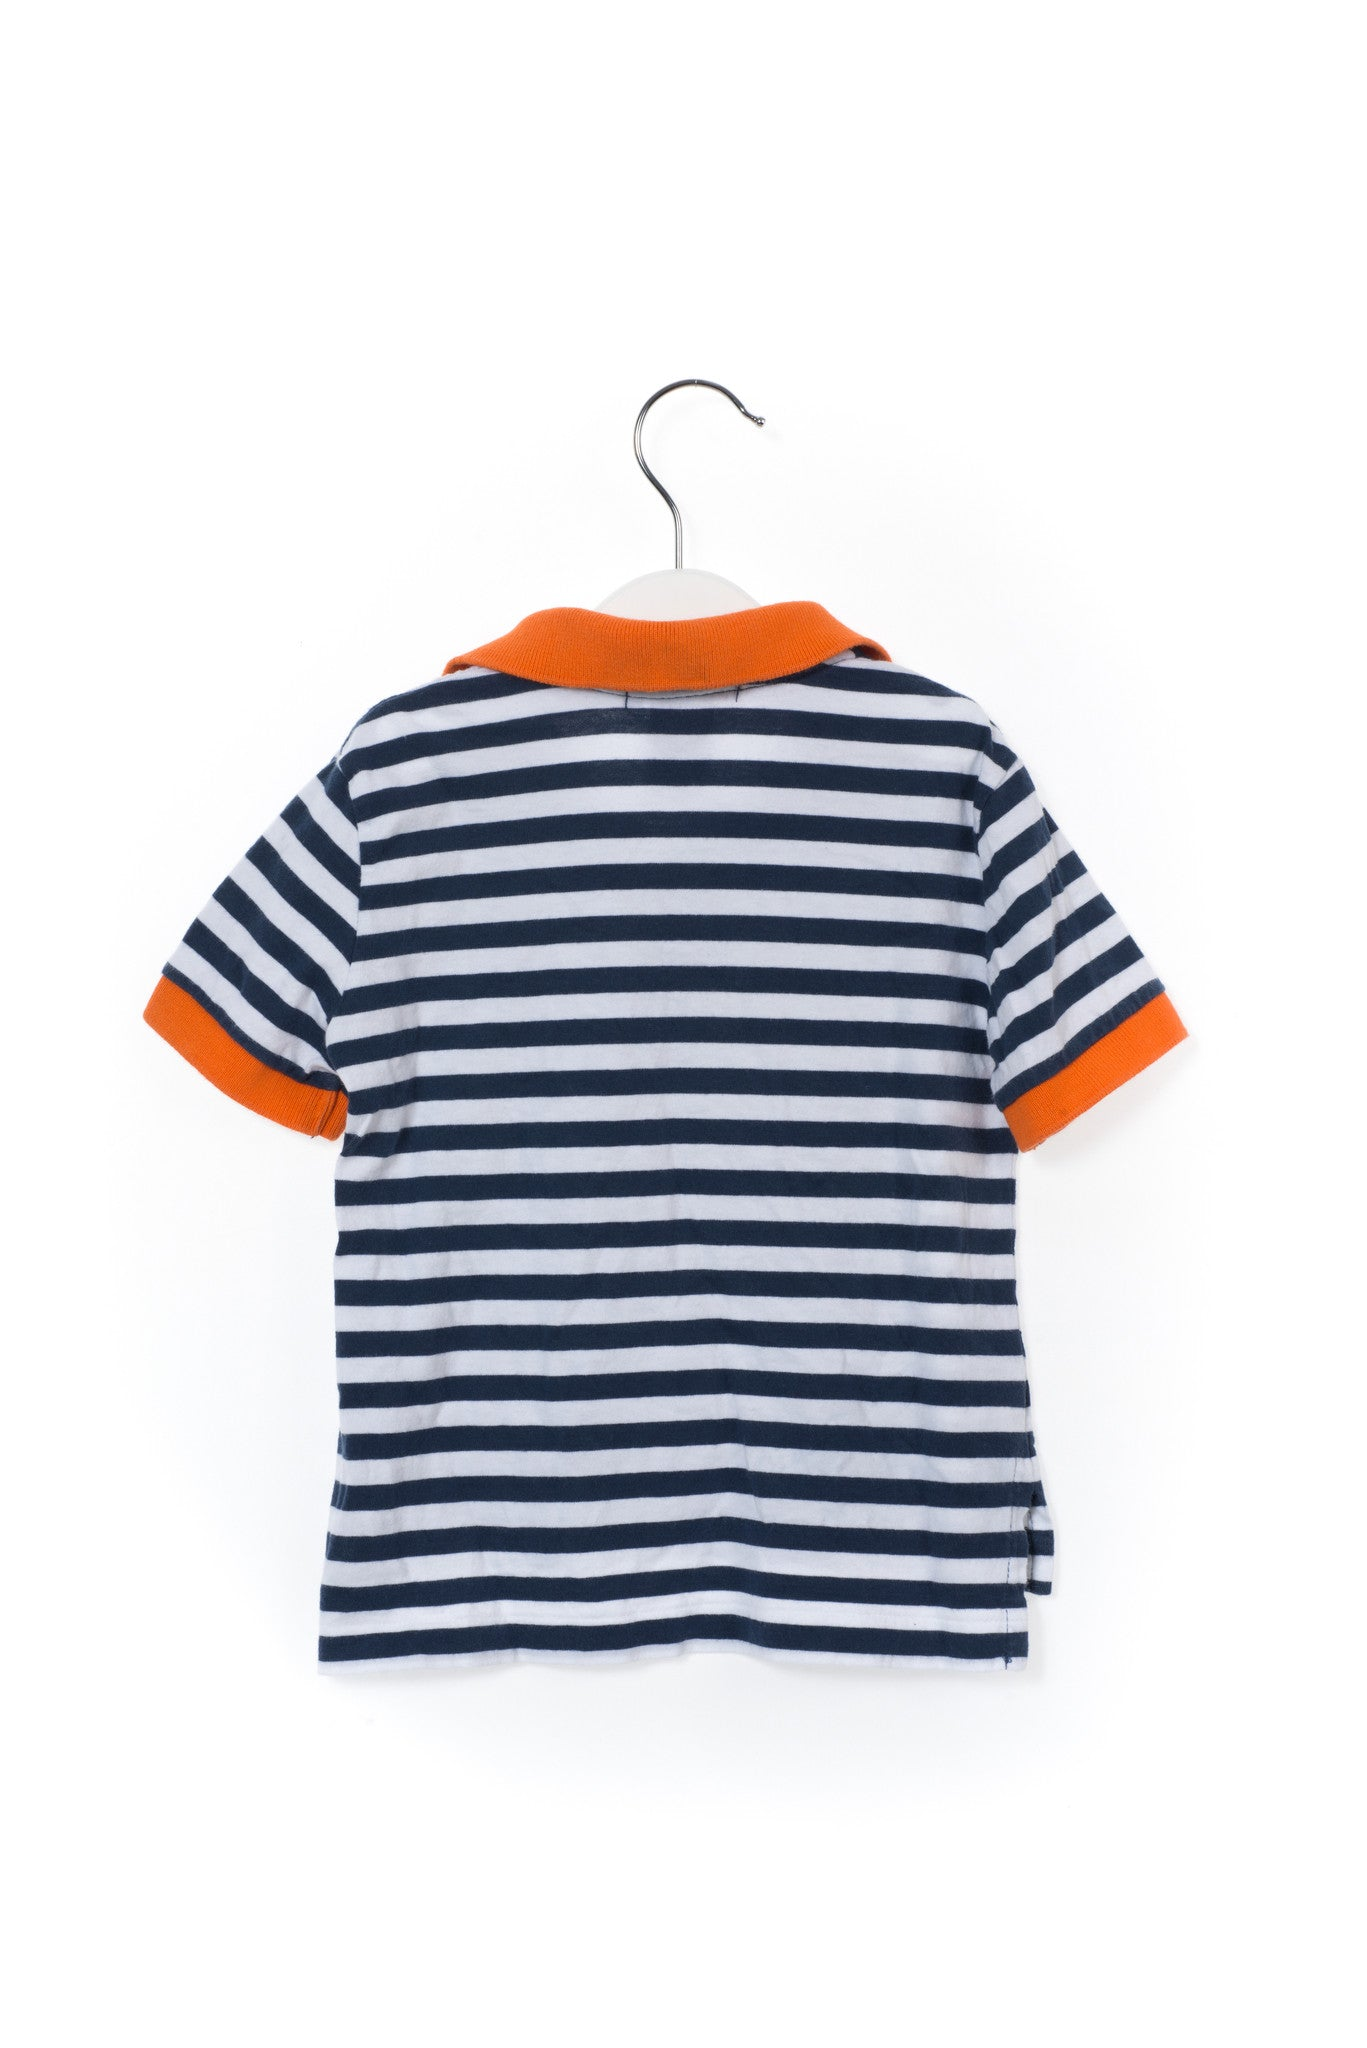 Polo 2T, Polo Ralph Lauren at Retykle - Online Baby & Kids Clothing Up to 90% Off